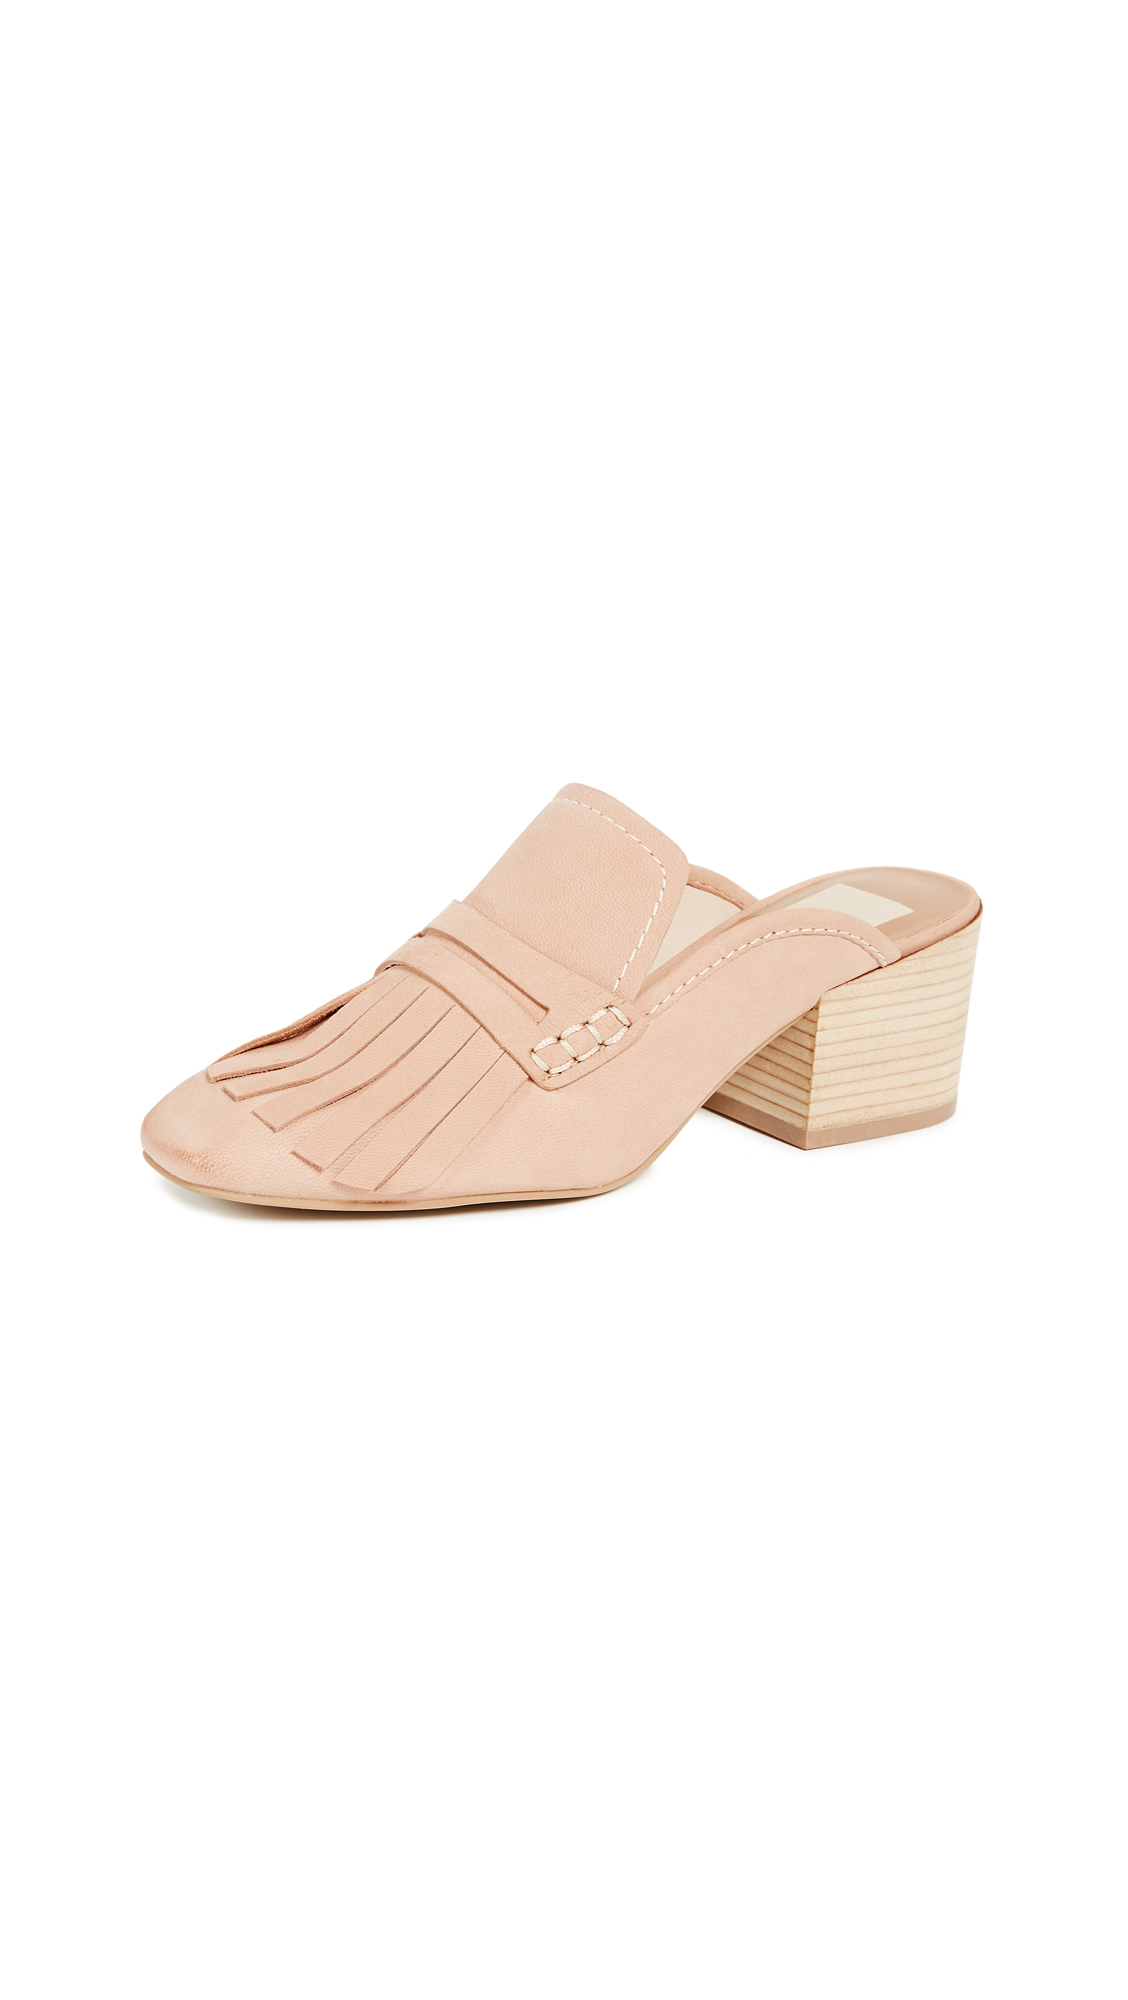 Dolce Vita Katina Block Heel Pumps - Natural